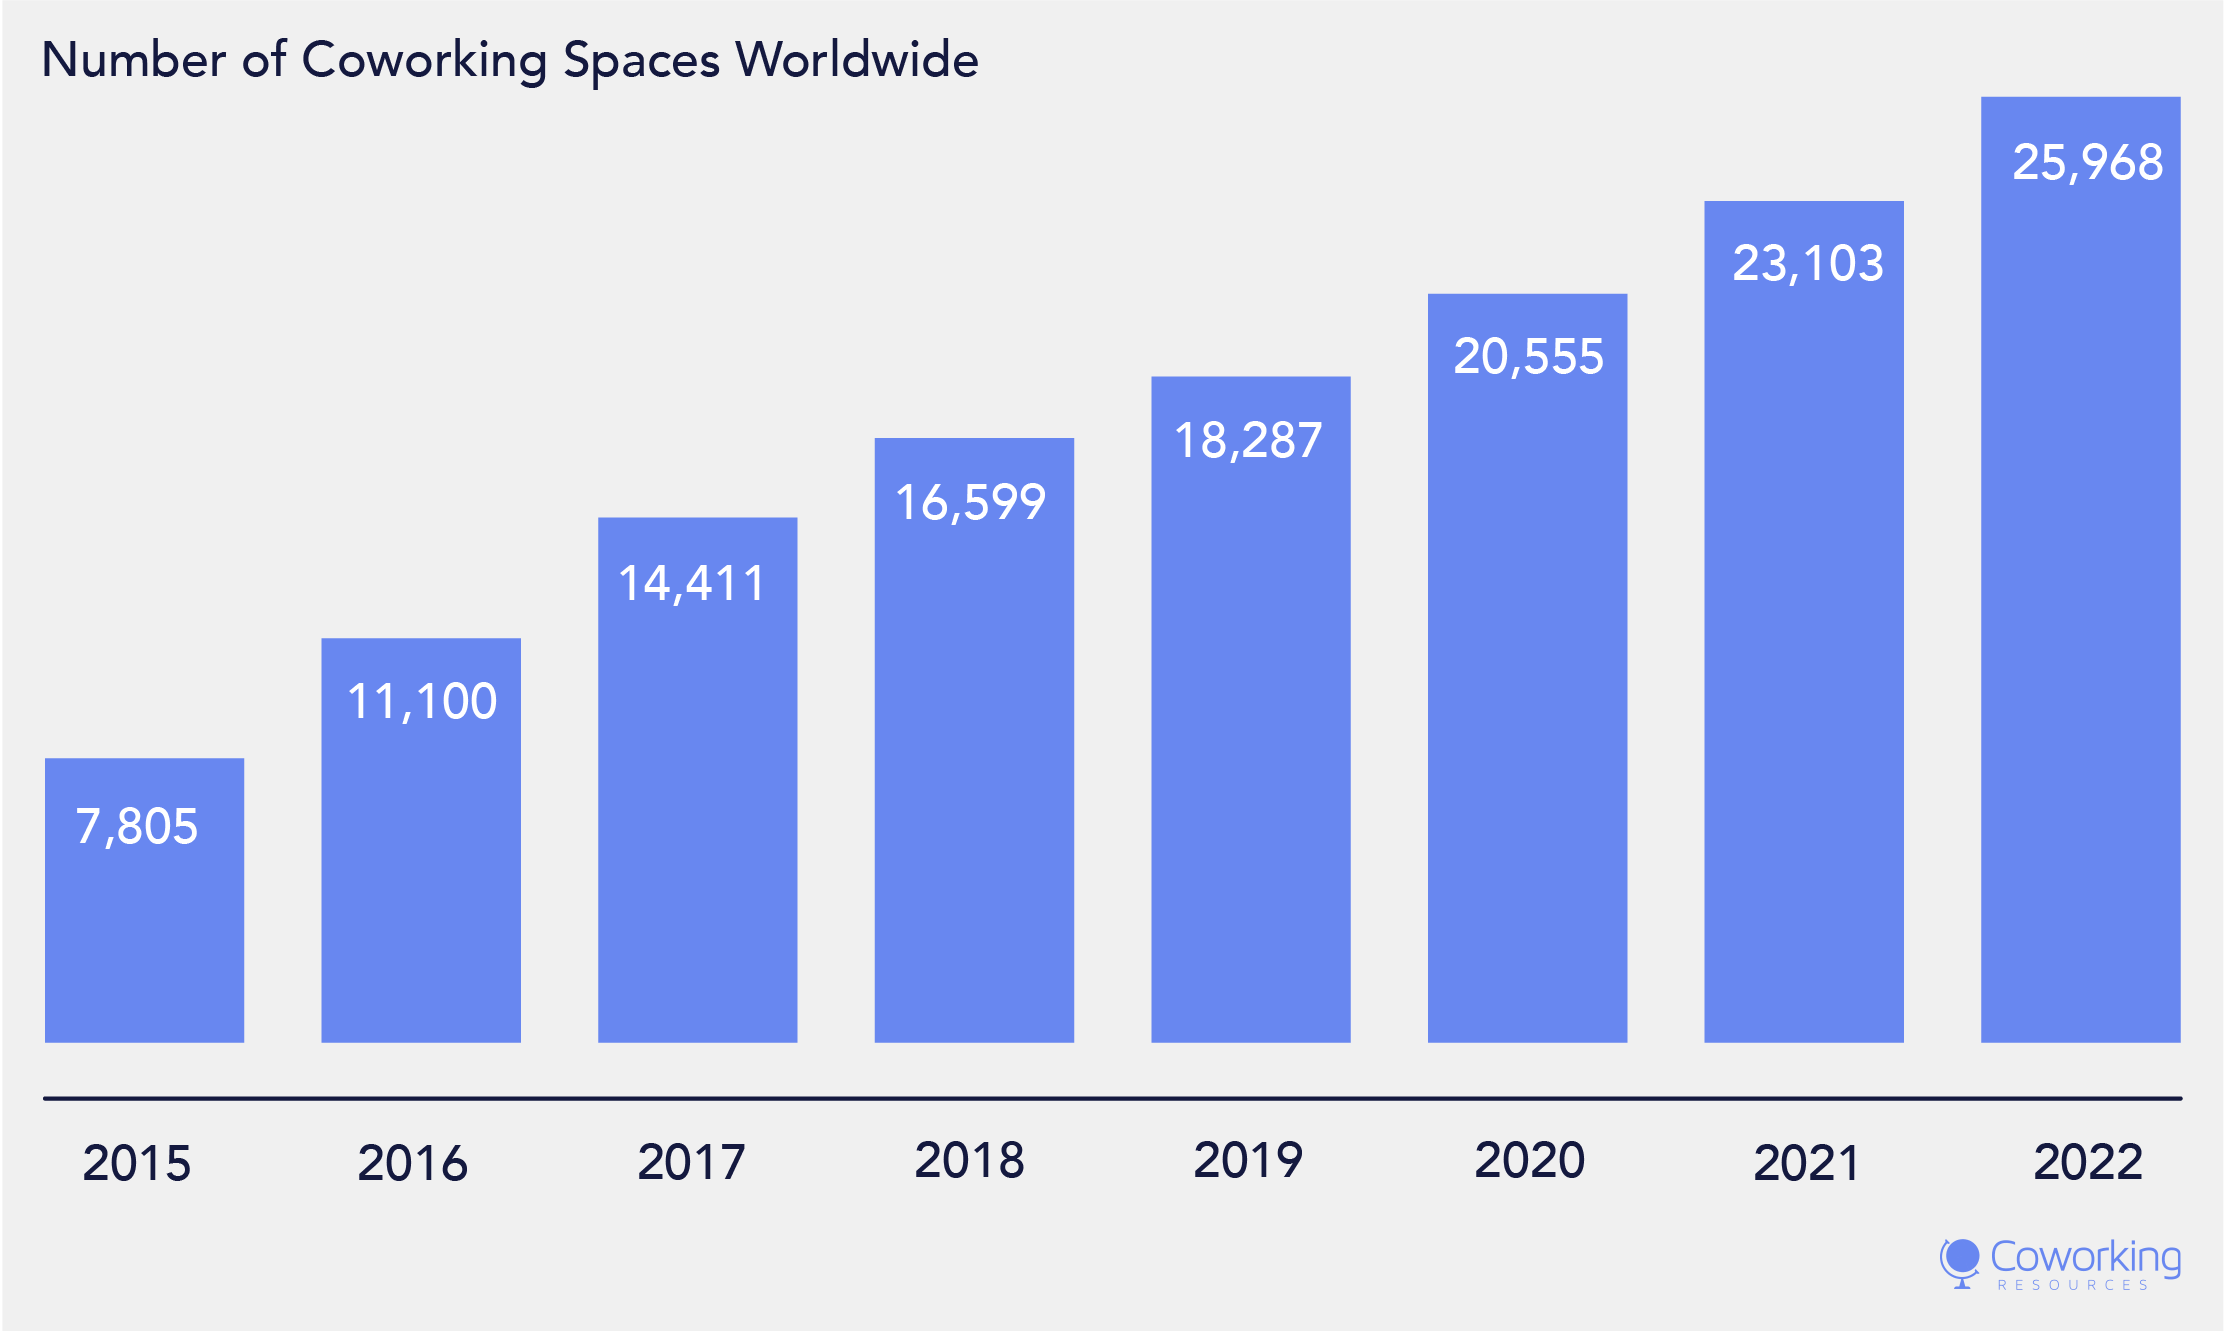 Growth Forecast: How Many Coworking Spaces Worldwide?